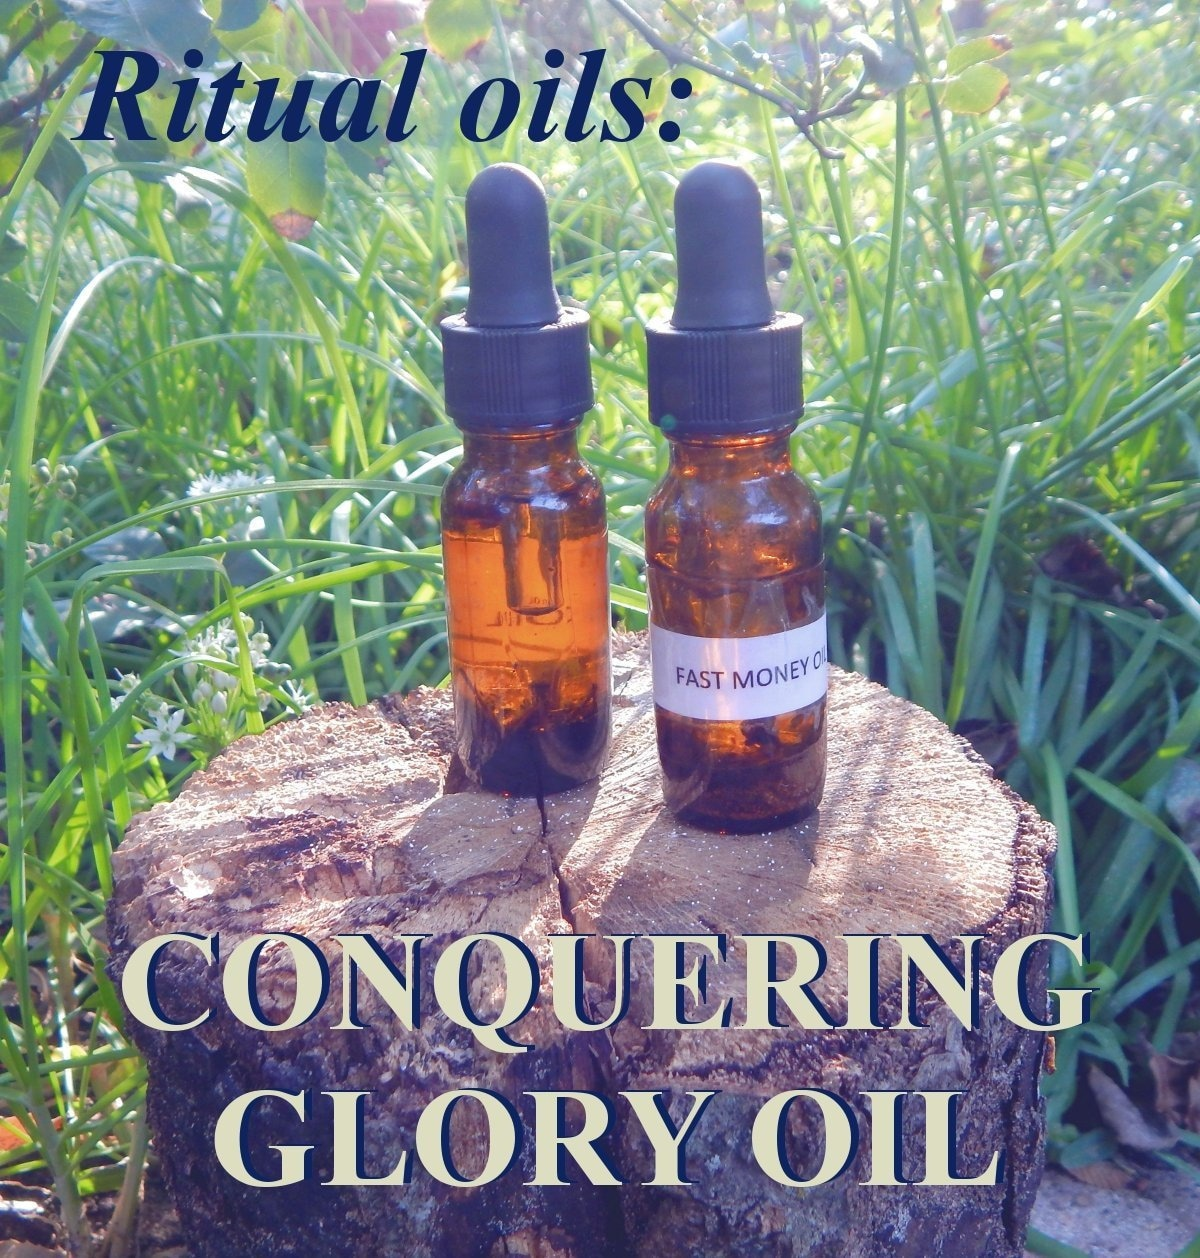 CONQUERING GLORY OIL 15ml - remove competition, overcome obstacles